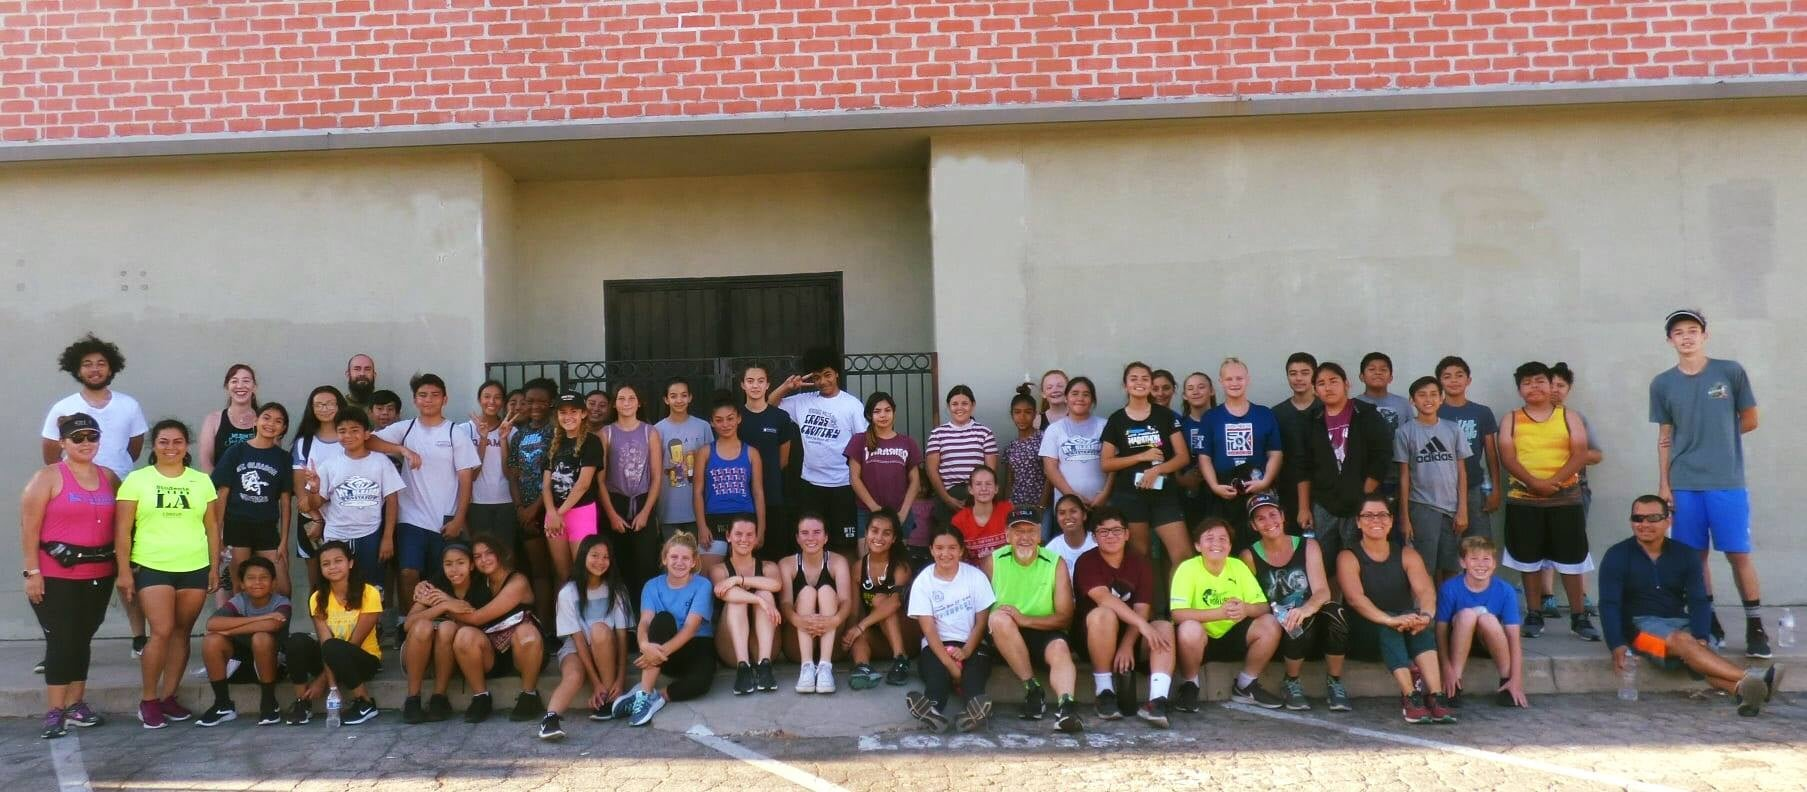 """""""Second Saturday practice checked off for our Mt. Gleason Runners SRLA 2019-2020 season!"""" - Curtis"""